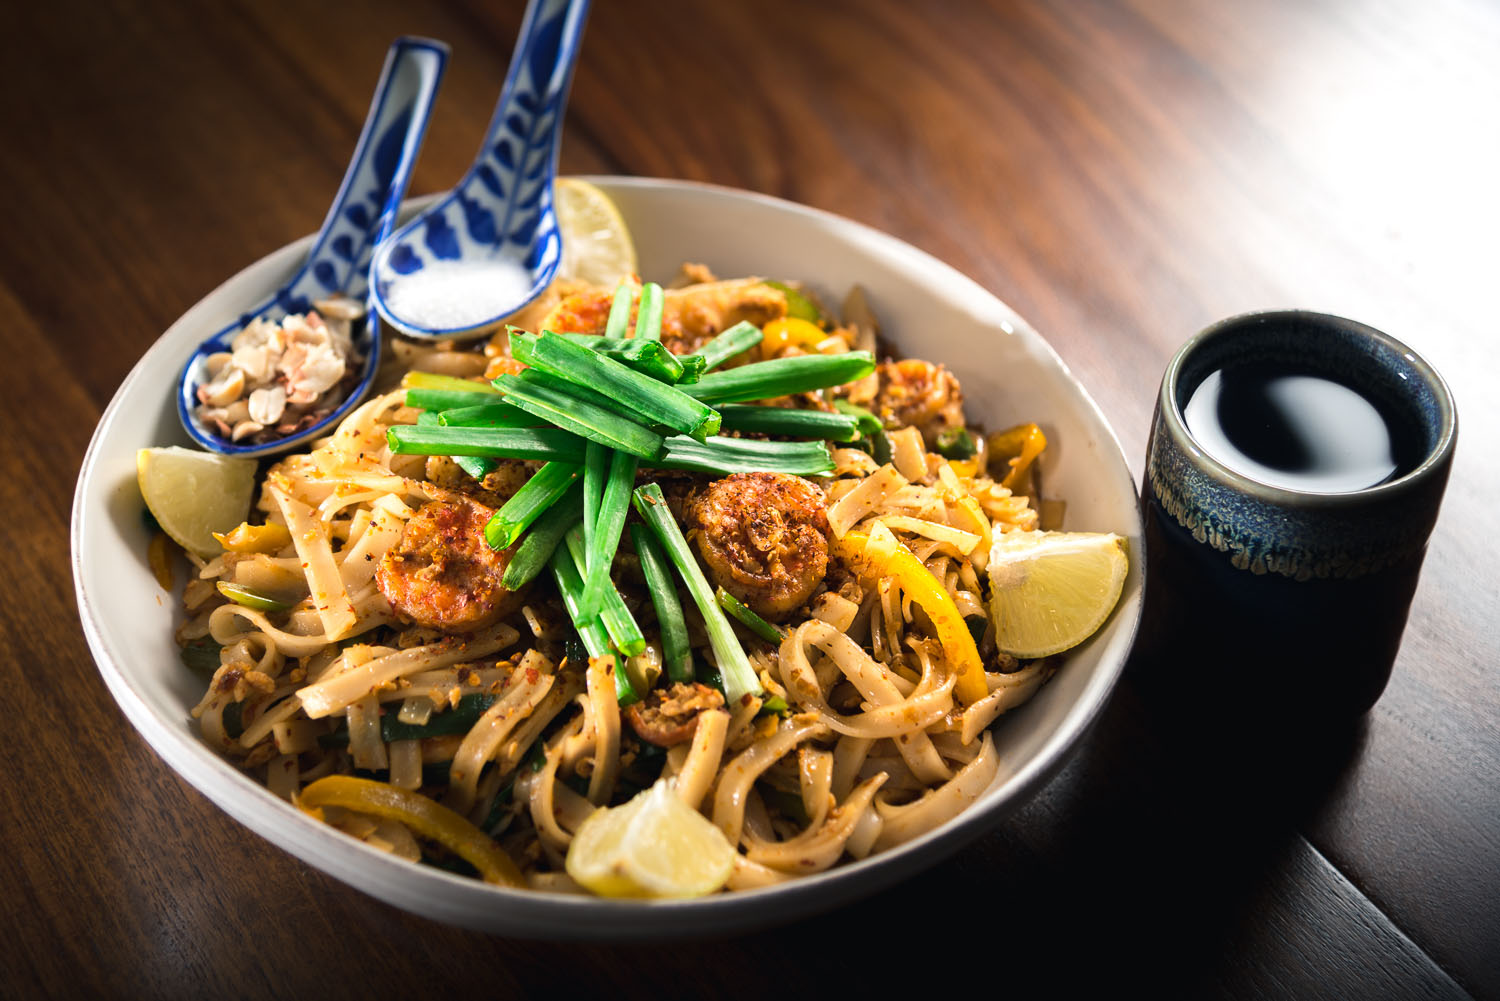 Authentic Pad Thai Rice Noodles with Shrimp in Tamarind sauce